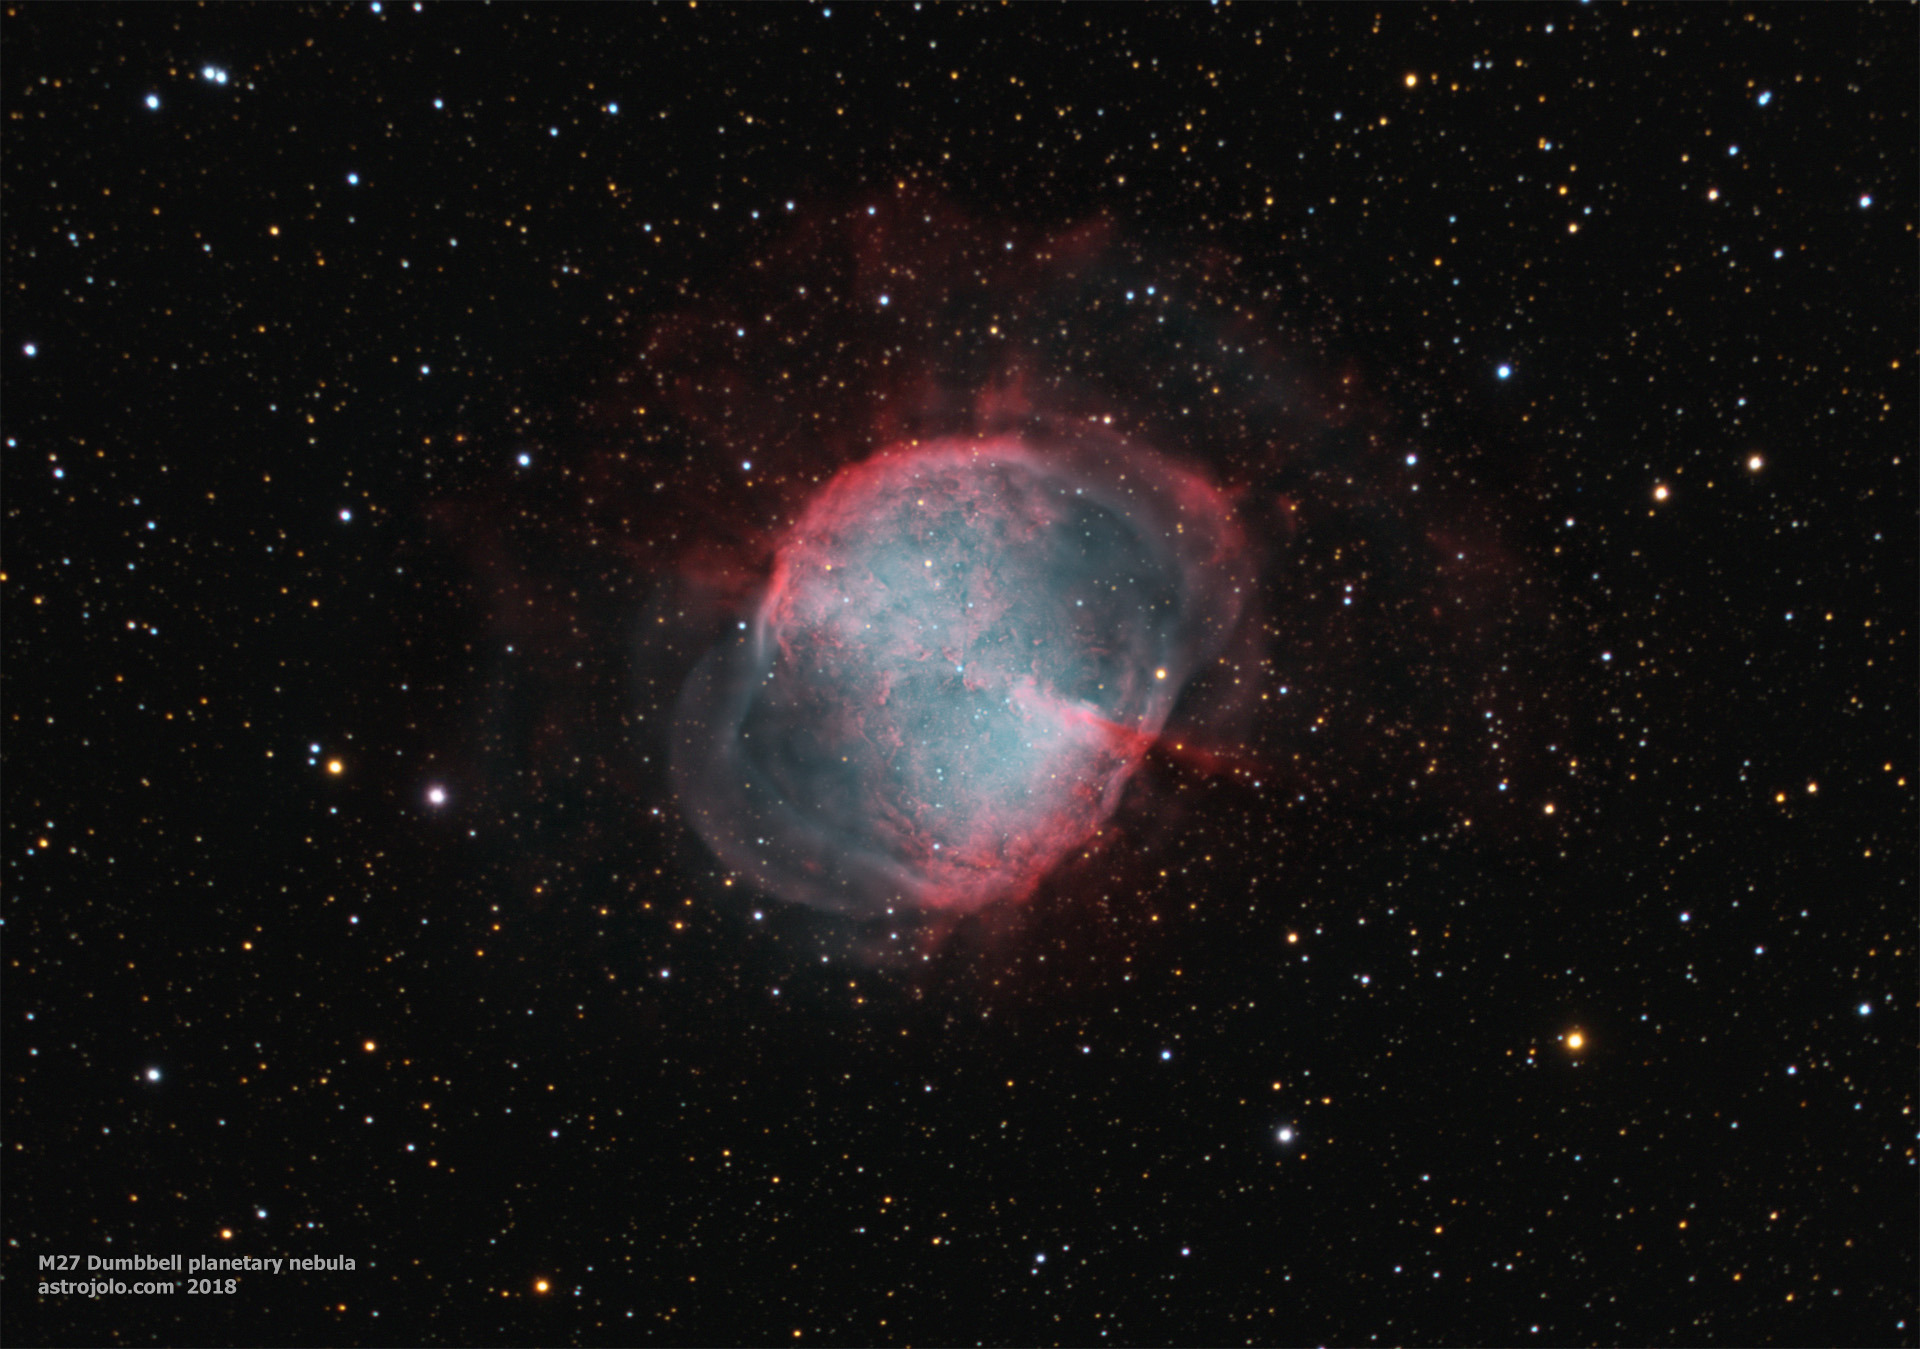 M27 Dumbbell Date: July-August, 2018 Location: Nieborowice, Poland Telescope: Meade ACF 10` Corrector: AP CCDT67 Camera: QHY163M, gain 100 Mount: SW EQ6 Guiding: SW 80/400 + ASI290MM Exposure: Ha:Oiii 100:30 x 5 minutes, RGB 50:30:40 x 30 seconds Conditions: seeing average-good, transparency average-good